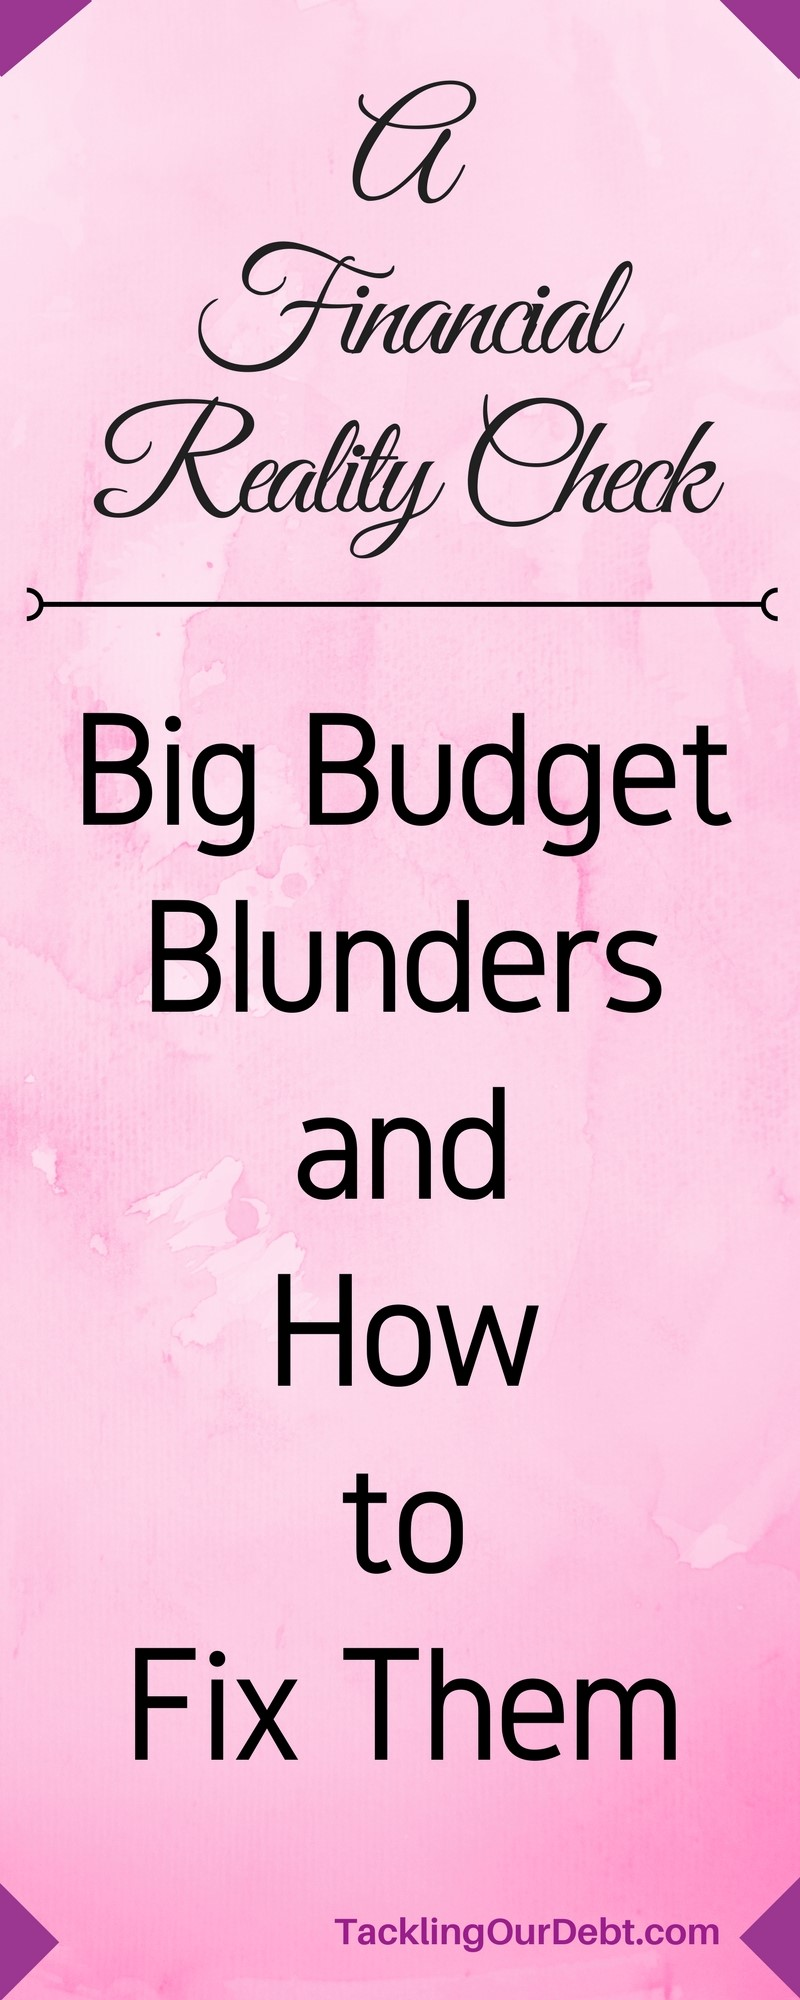 With good intentions, most people will set up a budget, but all too often they fail to follow it. This is most often because their budget wasn't set up properly in the first place. Here are some of the biggest mistakes people make when it comes to following a budget, and ways to avoid them to finally get your personal finances under control.